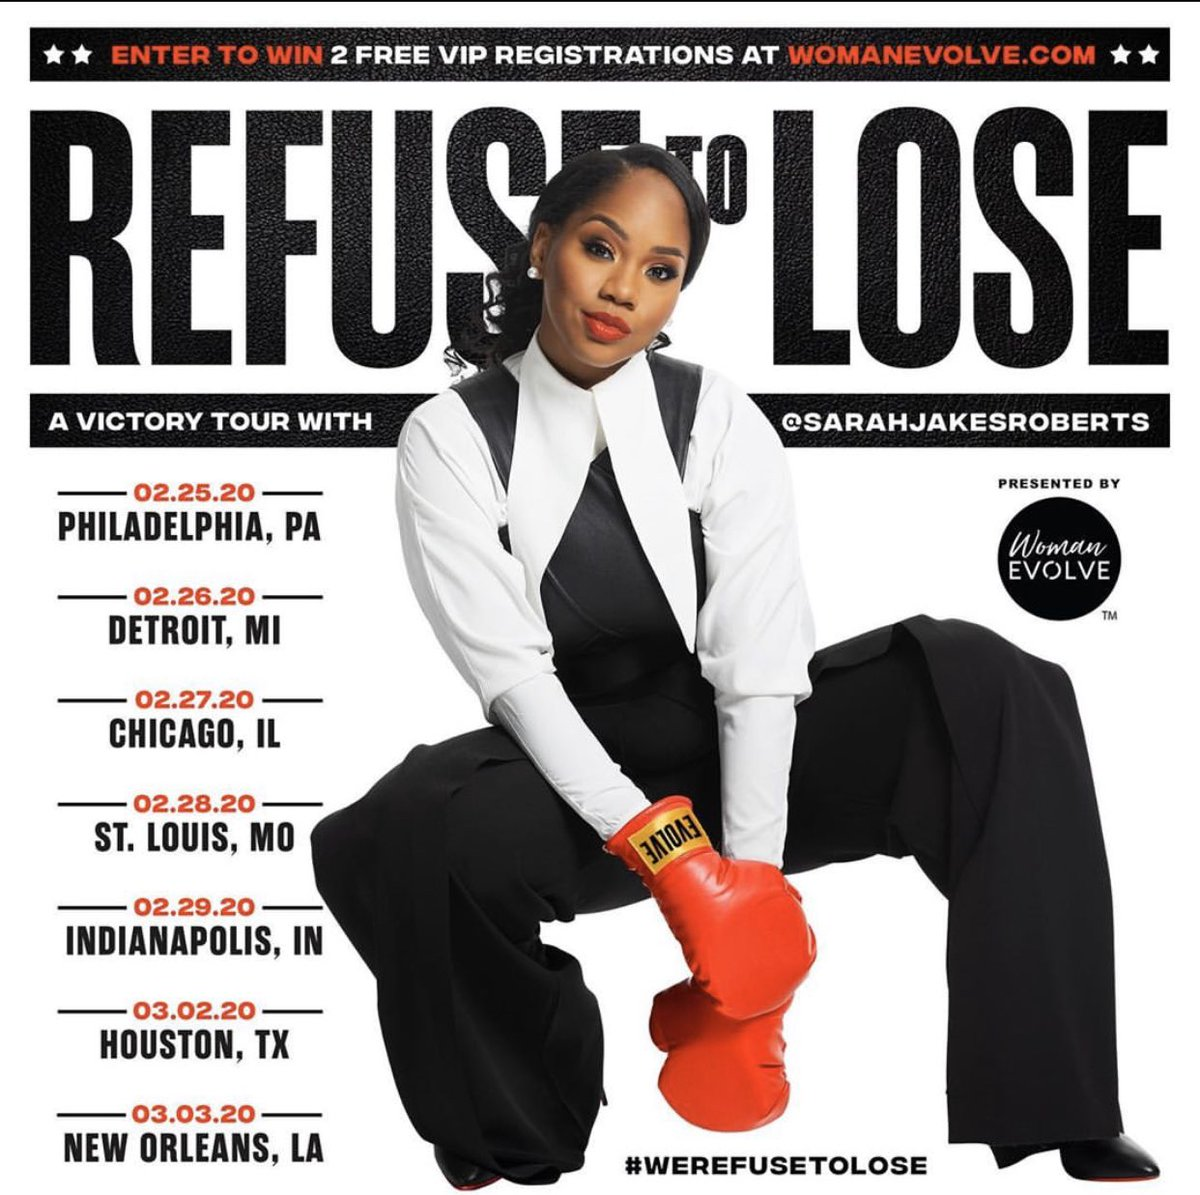 @womanevolve @SJakesRoberts My cousin on my mama side ☺️☺️ #MentorFromAfar I will be in the building #Chicago #ChiTown Your story hits home for me. I to was a mother at 15 now a #WorshipLeader son is a senior in college 💃🏾💃🏾💃🏾. I #ReFuseToLose https://t.co/keKBYzXFhy